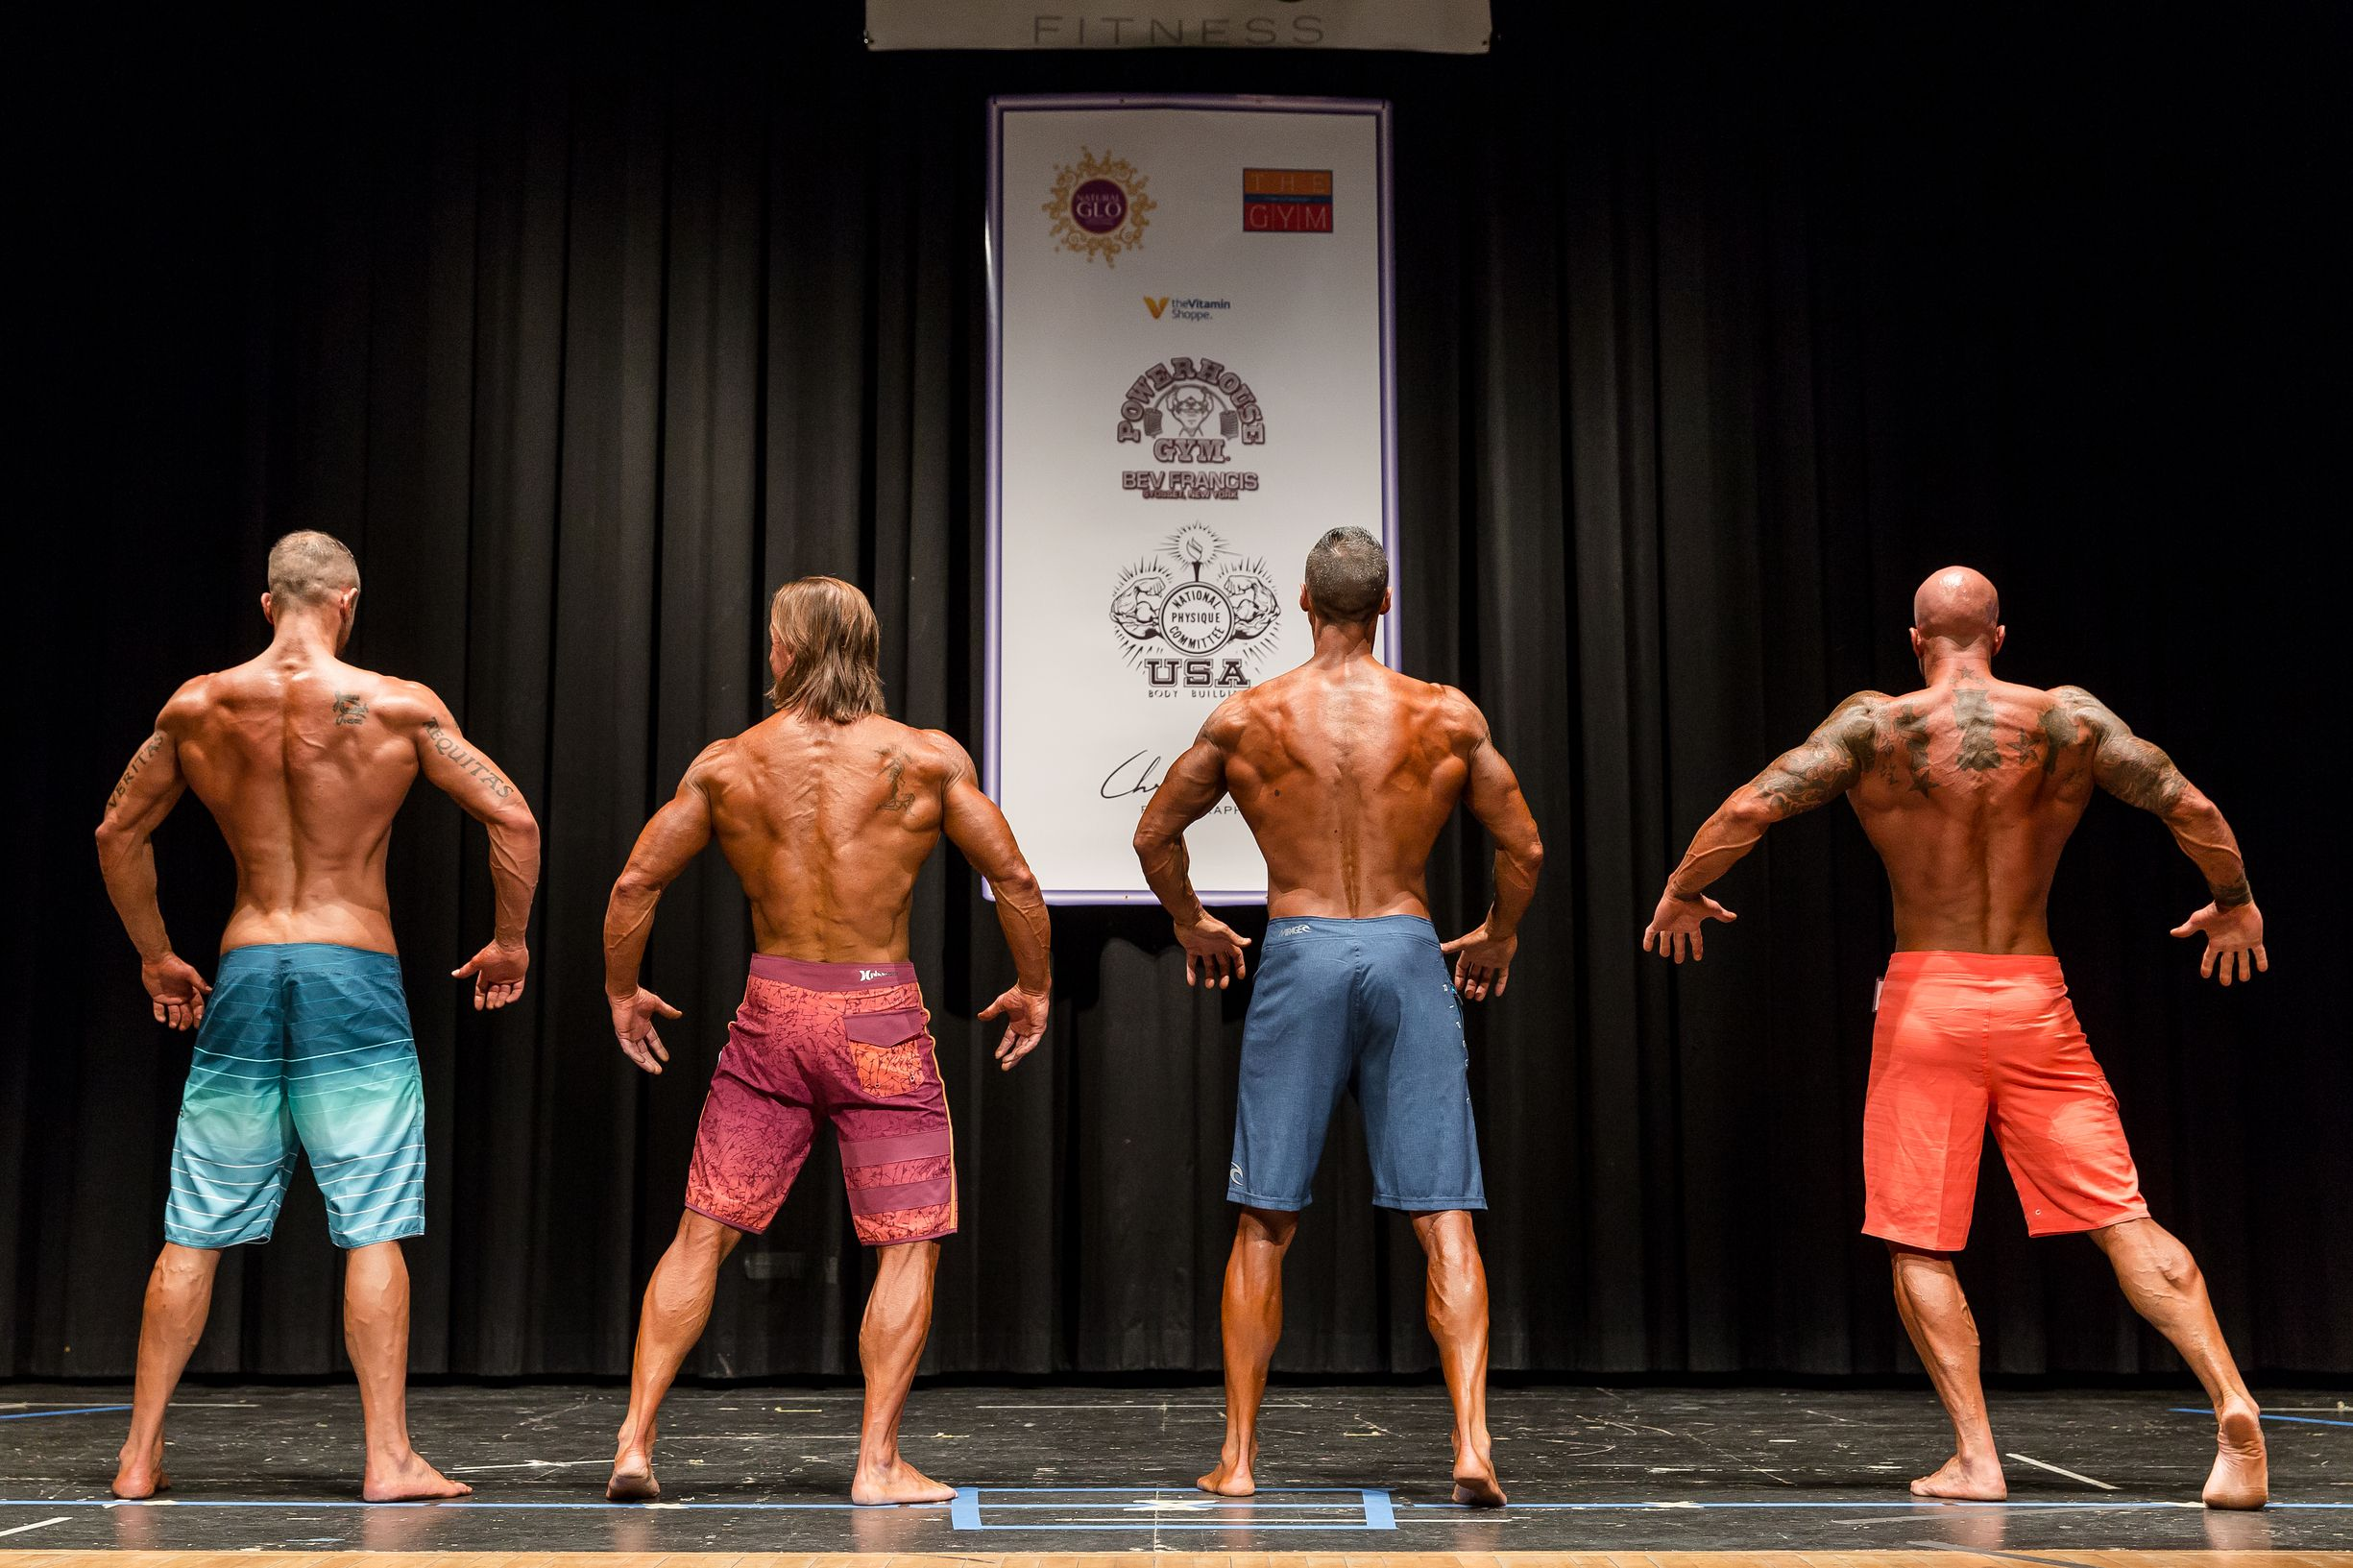 John Joseph Quinlan (far right) 2015 NPC Vermont Championships Men's Master Physique on Stage Photo by Chris Keeley #JohnQuinlan